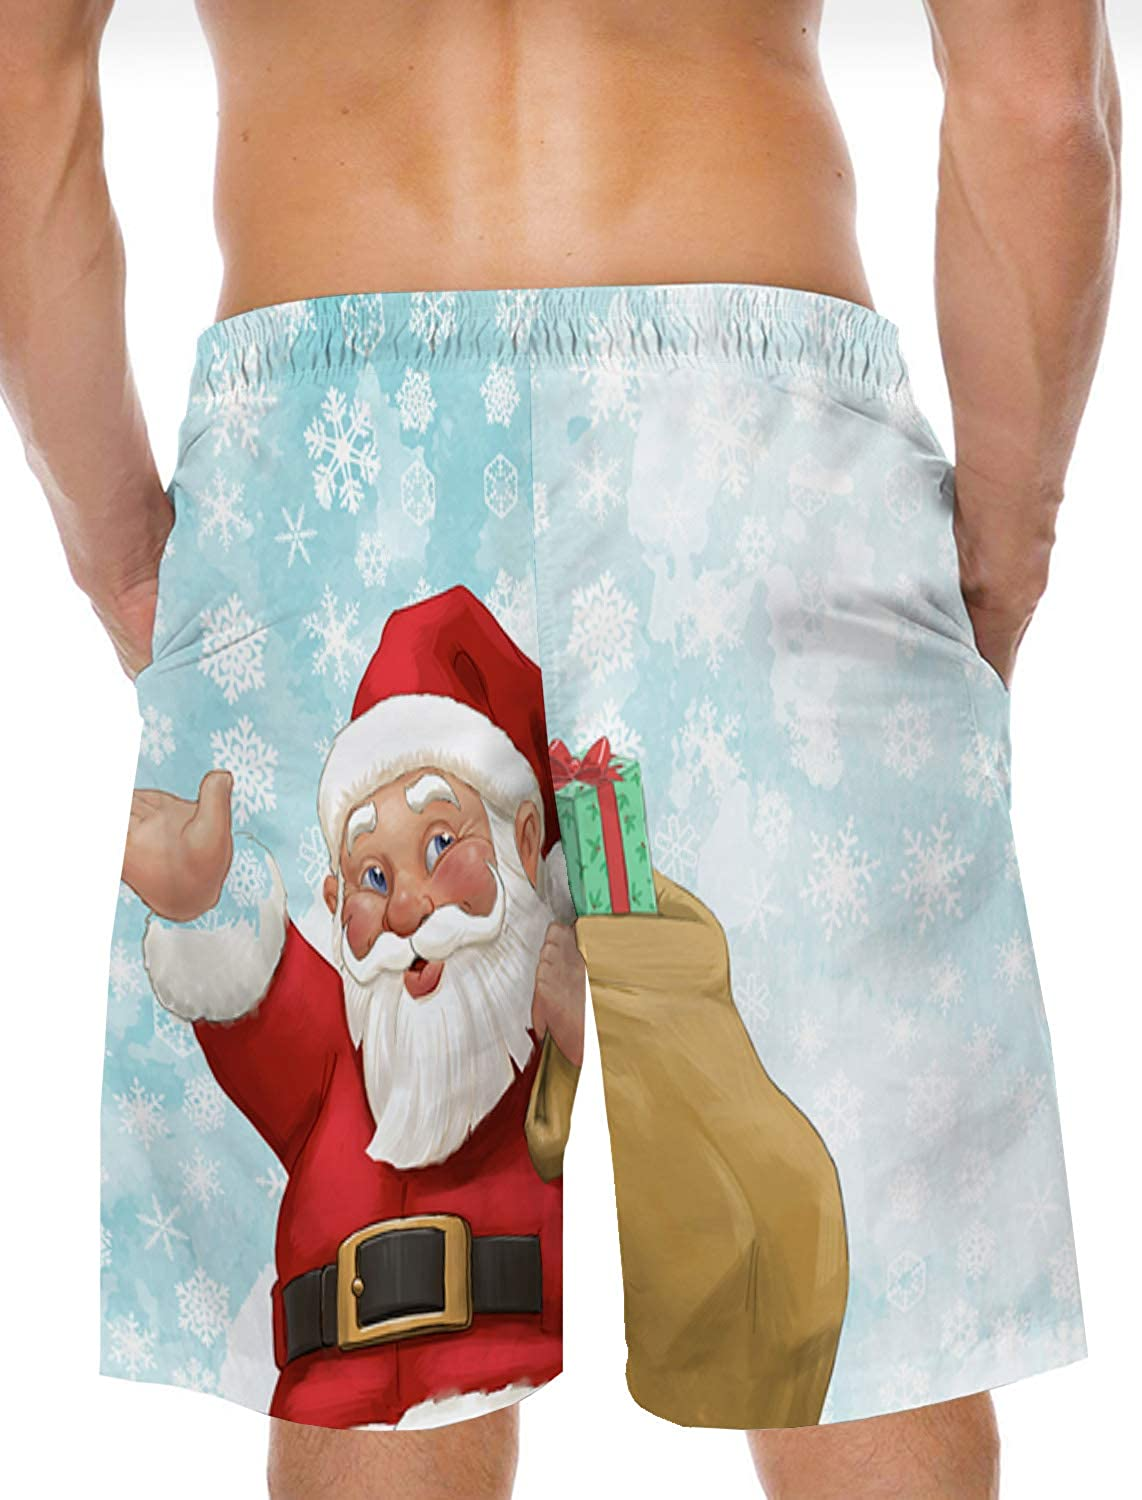 Mens Beach Shorts Christmas Plant Elements Summer Casual Quick Dry Short Pants Stretch Swimming Trunks with Pocket